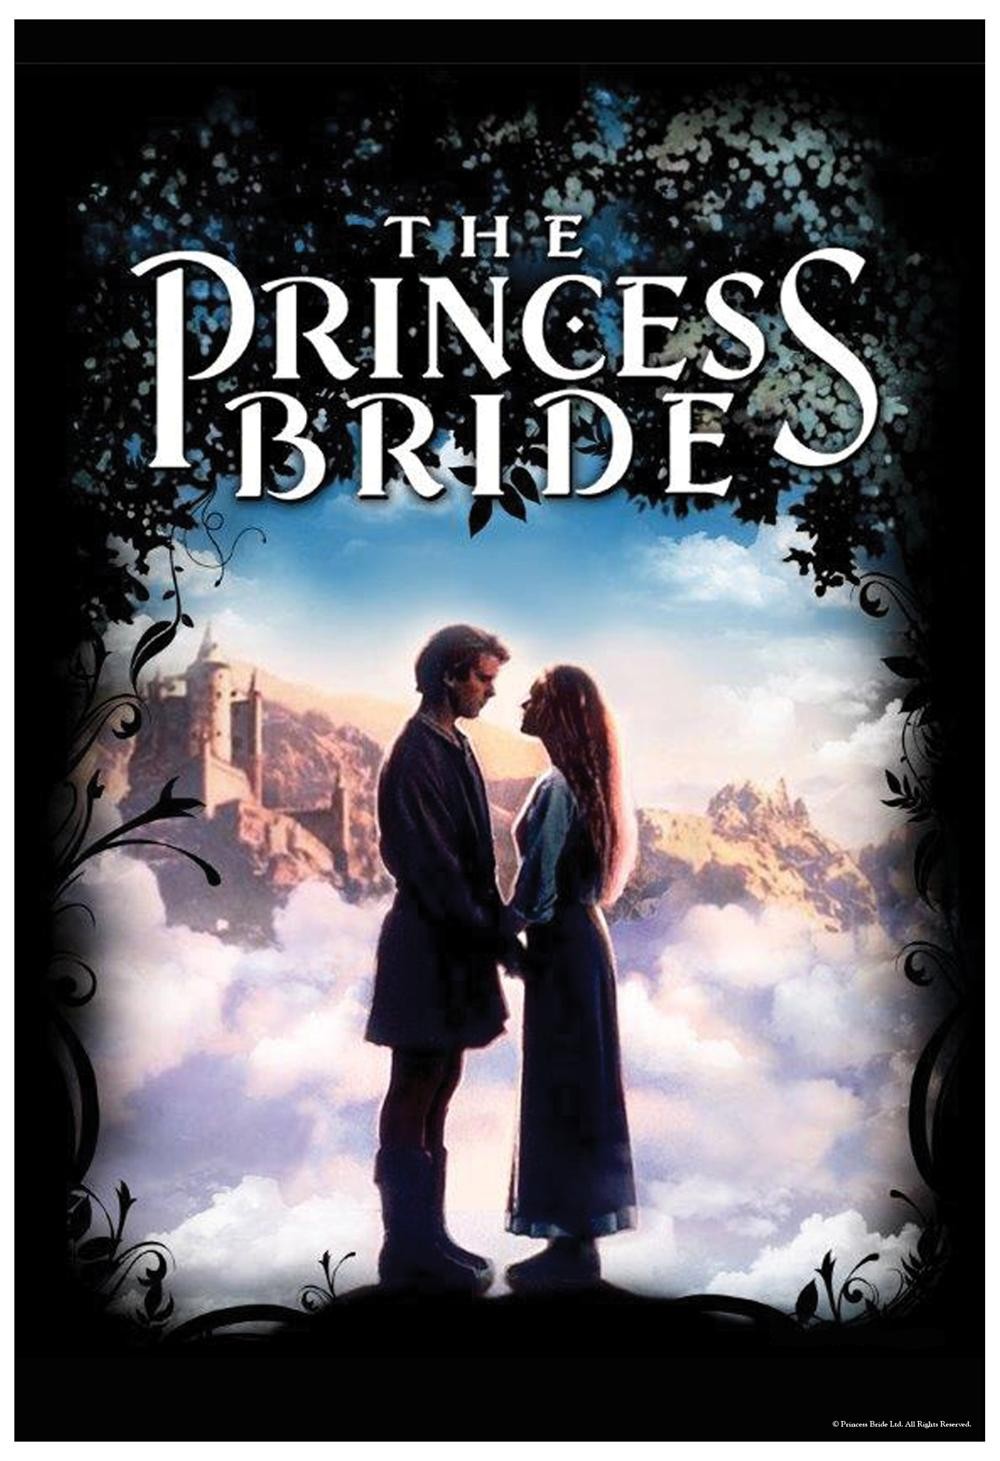 the princess bride character analysis essay The princess bride the princess bride is a 1987 american film, based on the 1973 novel of the same name written by william goldman, combining comedy, adventure, romance, and fantasy the film was directed by rob reiner from a screenplay by goldman also the book's author.